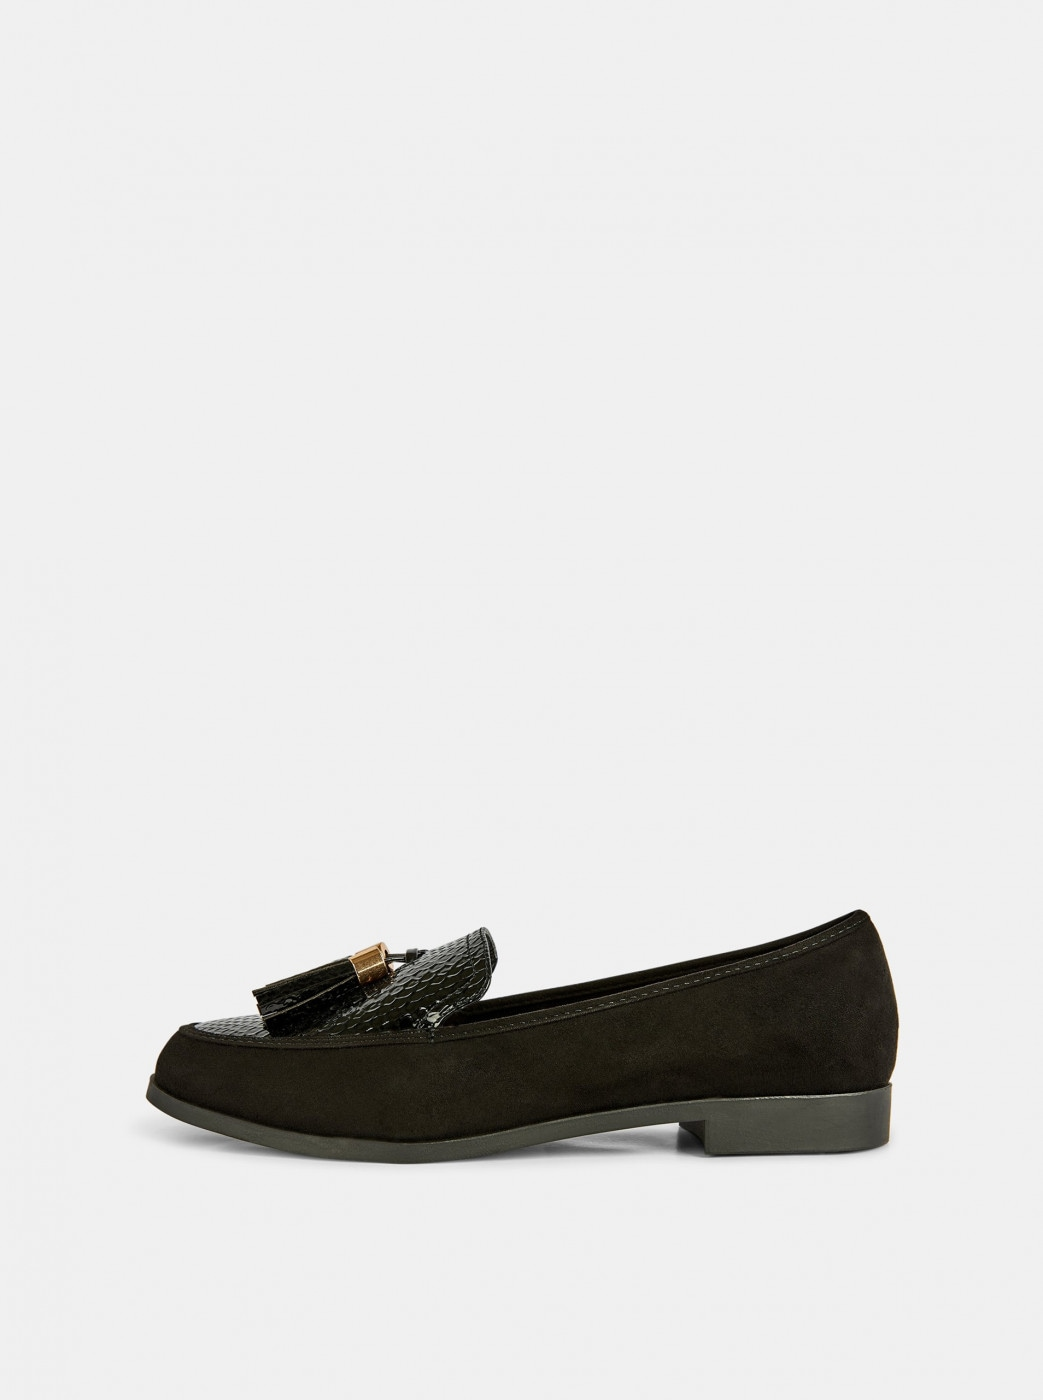 Black loafers in suede finish by Dorothy Perkins